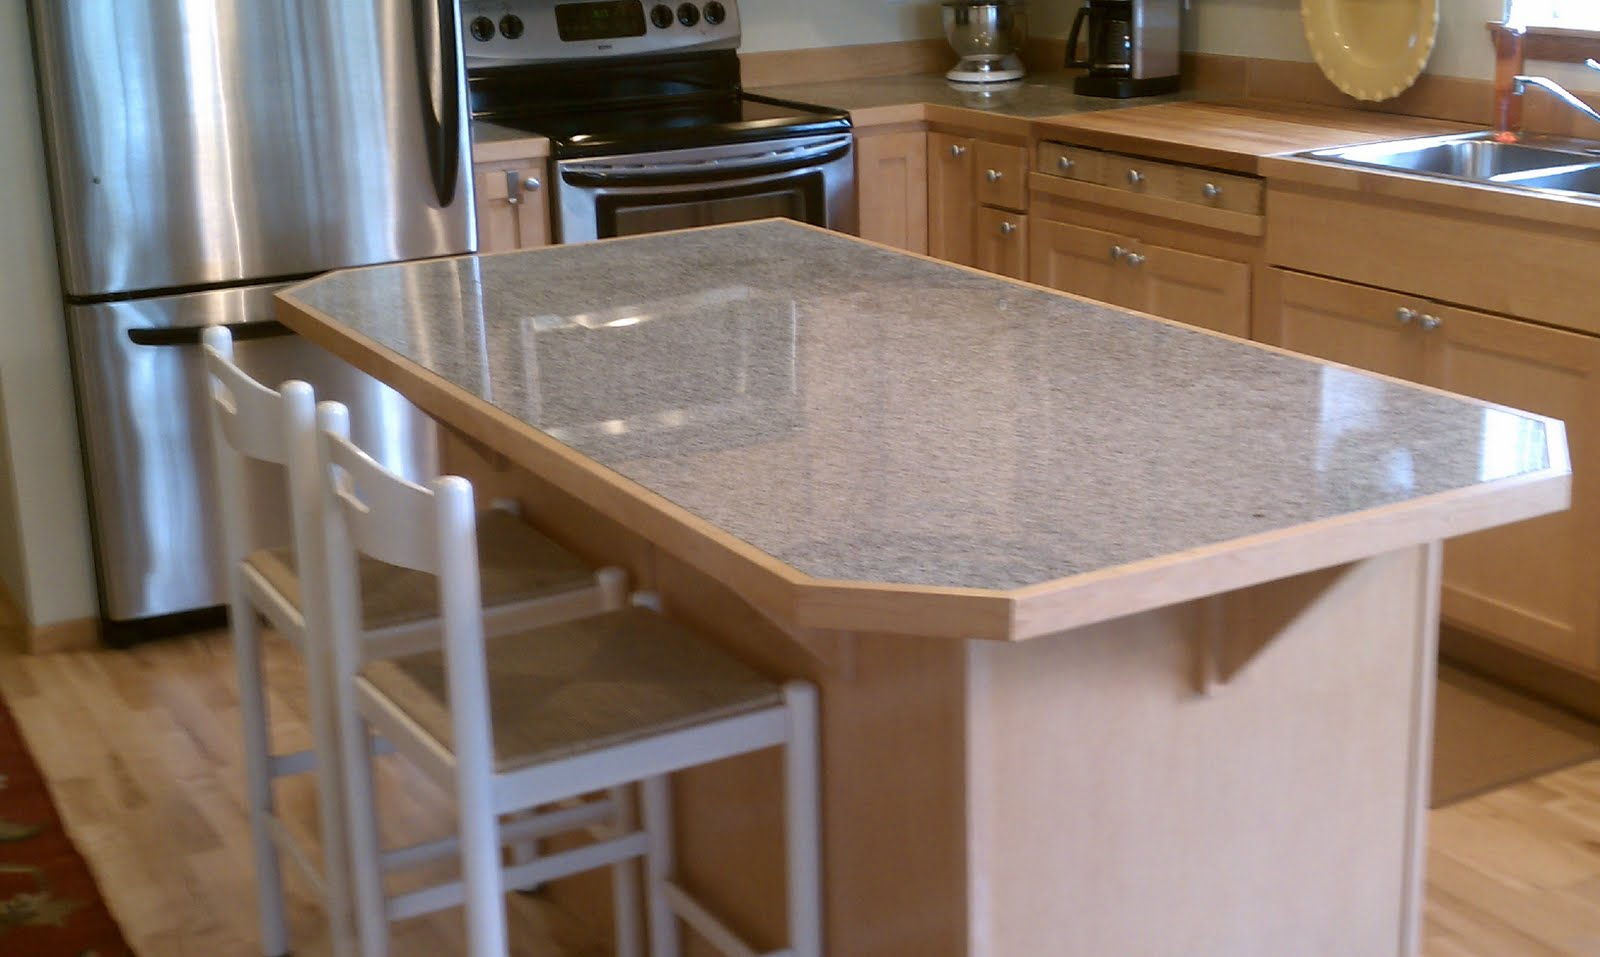 Buy Large Kitchen Island 28 Images Small Kitchen Island Seating Storage Home Design Ideas